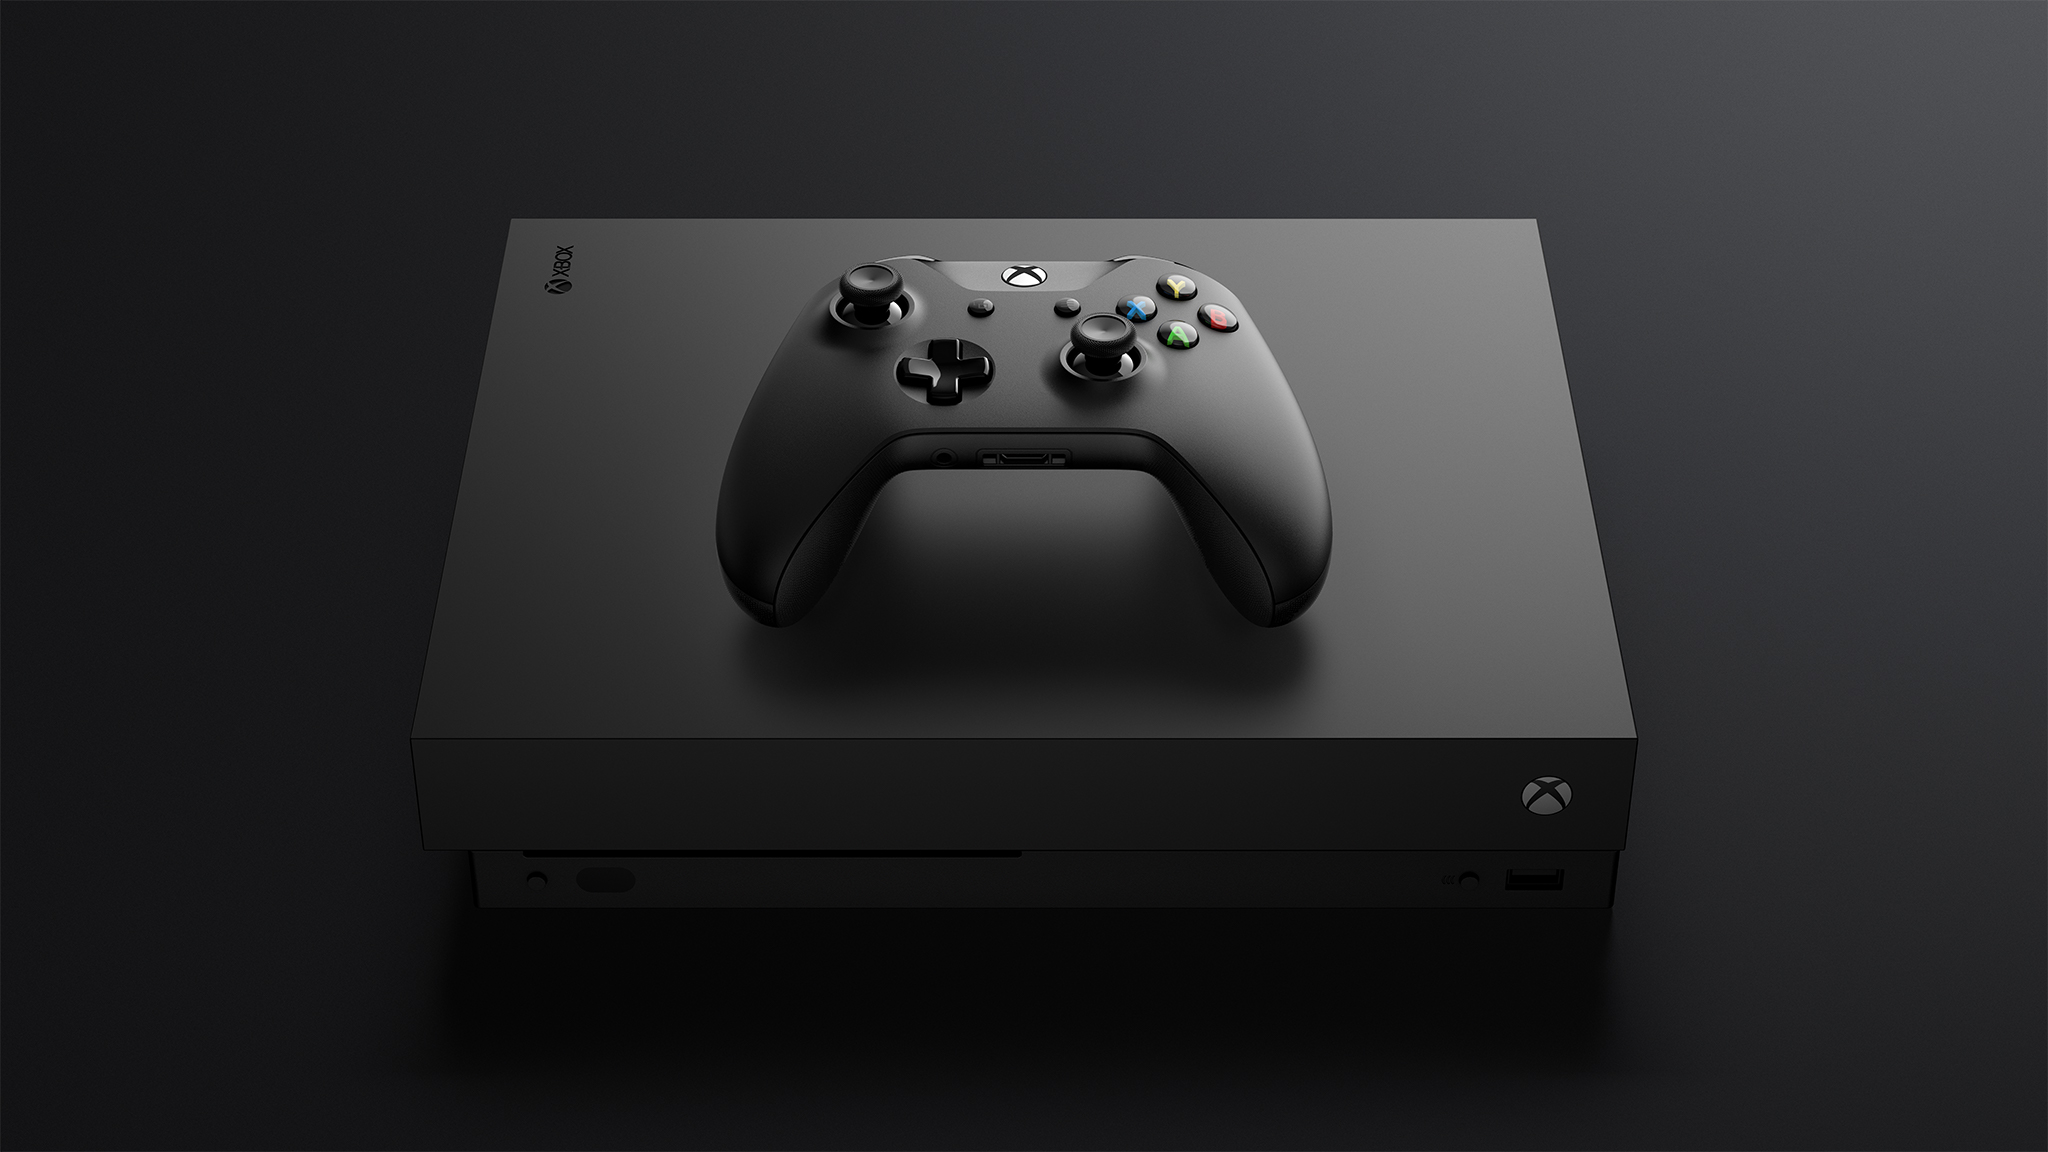 Xbox One X - currently the world's most powerful console